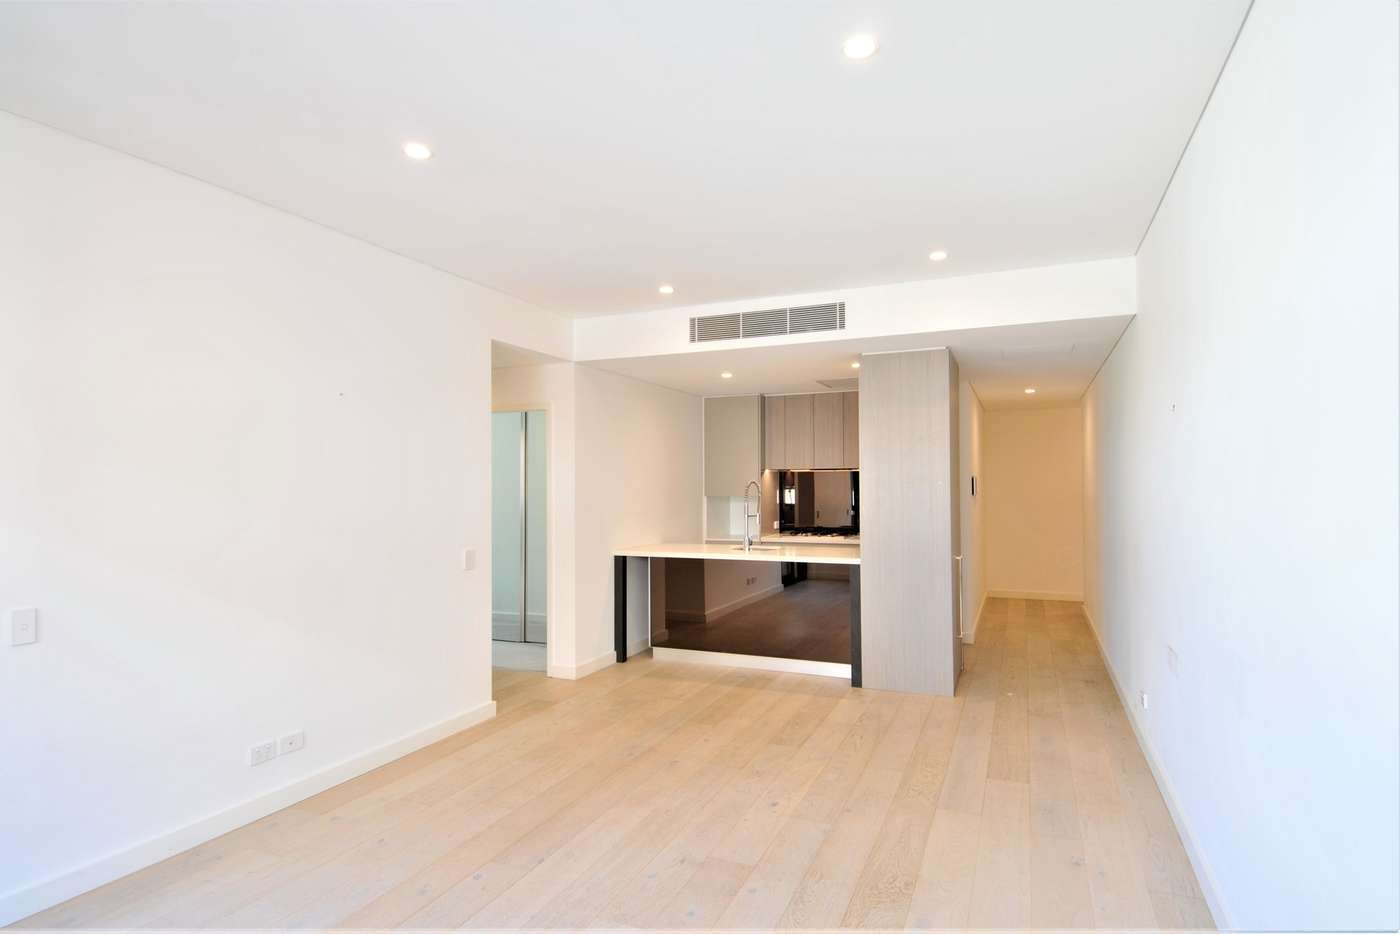 Main view of Homely apartment listing, 107/1 Victoria Street, Roseville NSW 2069